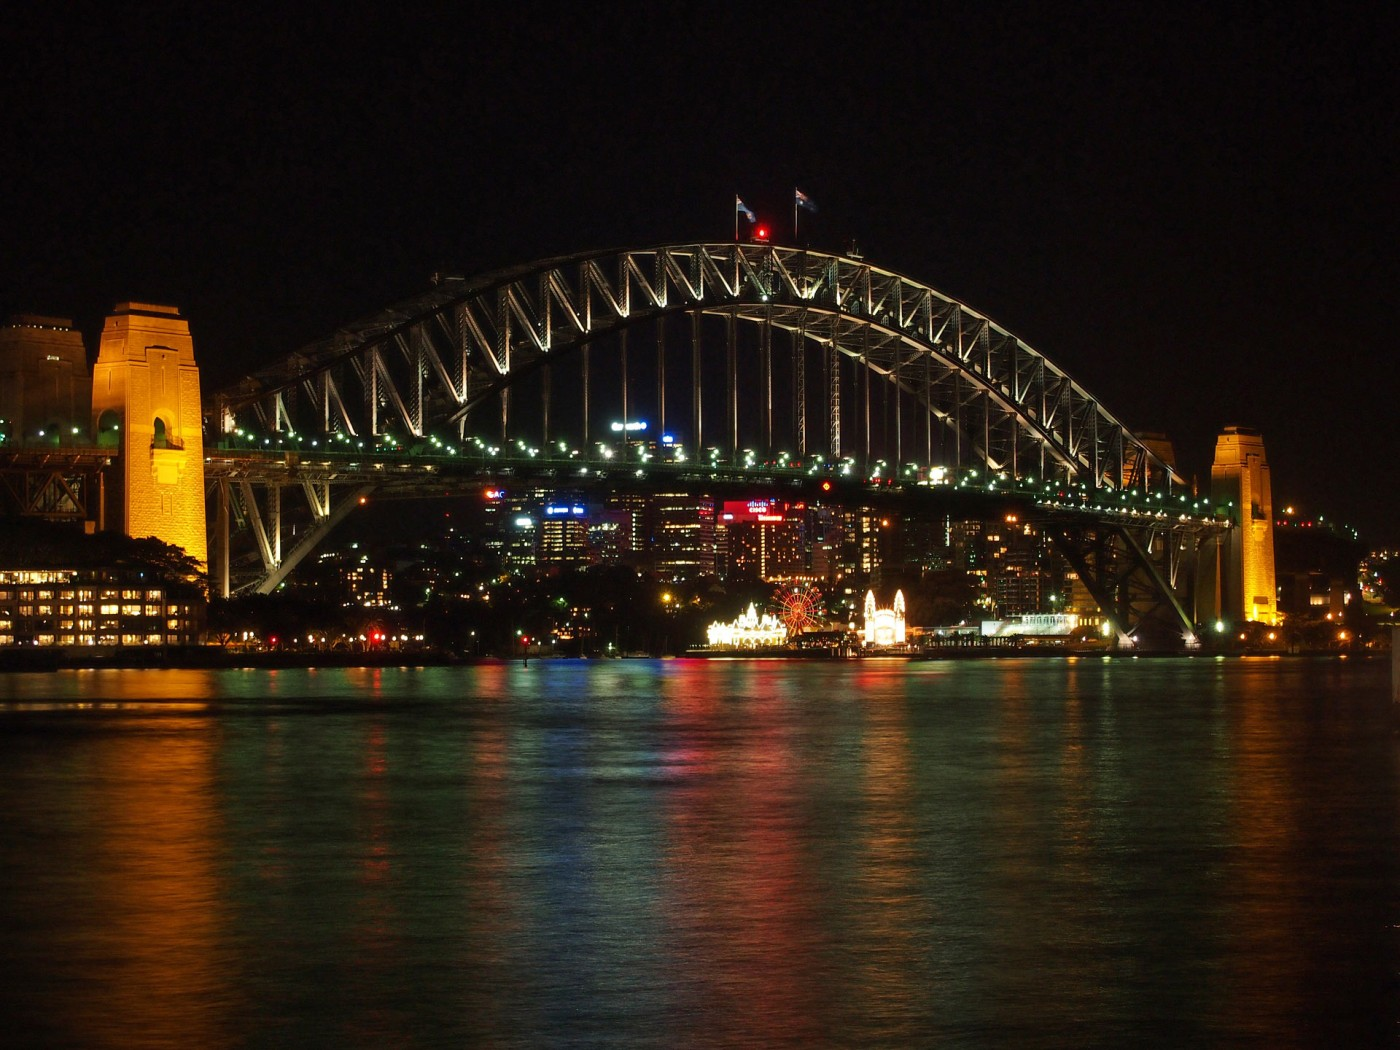 View at the Harbour Bridge of Sydney at night